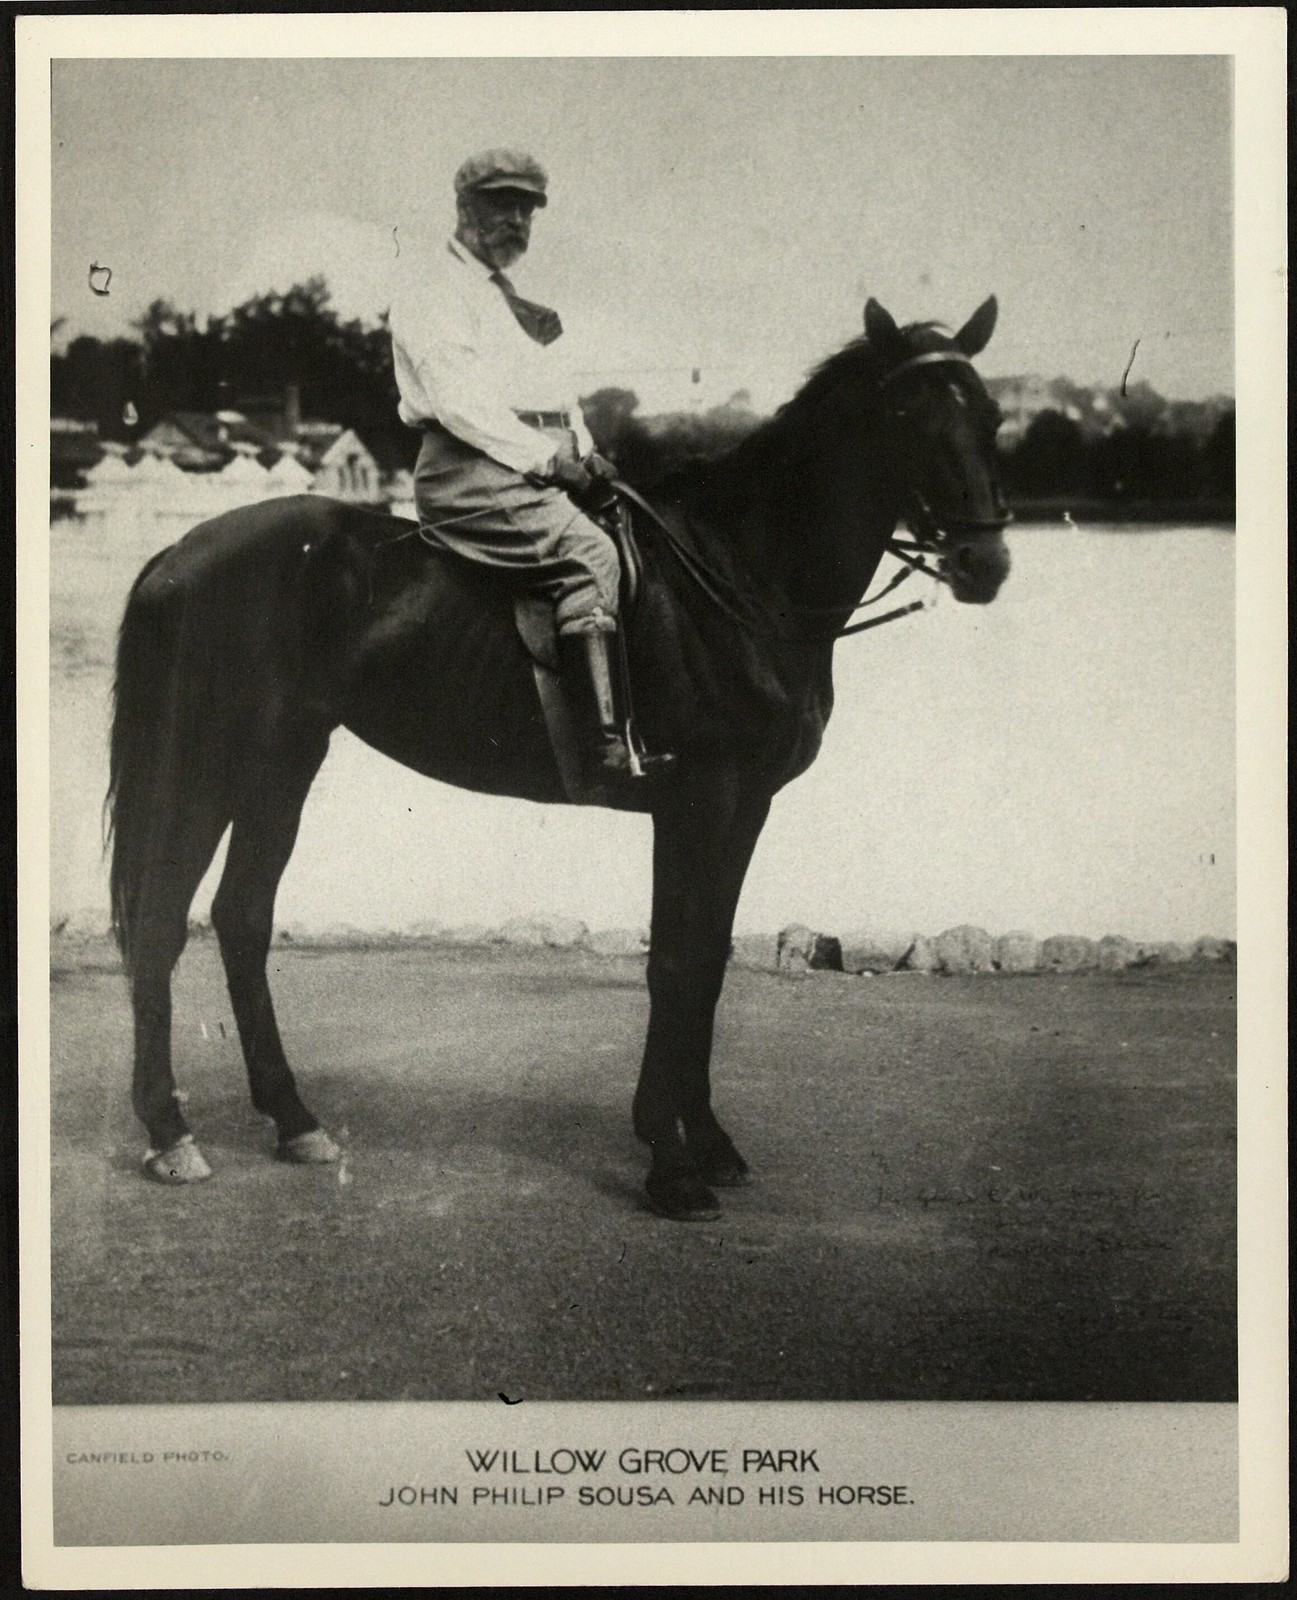 Sousa at Willow Grove Park on horse